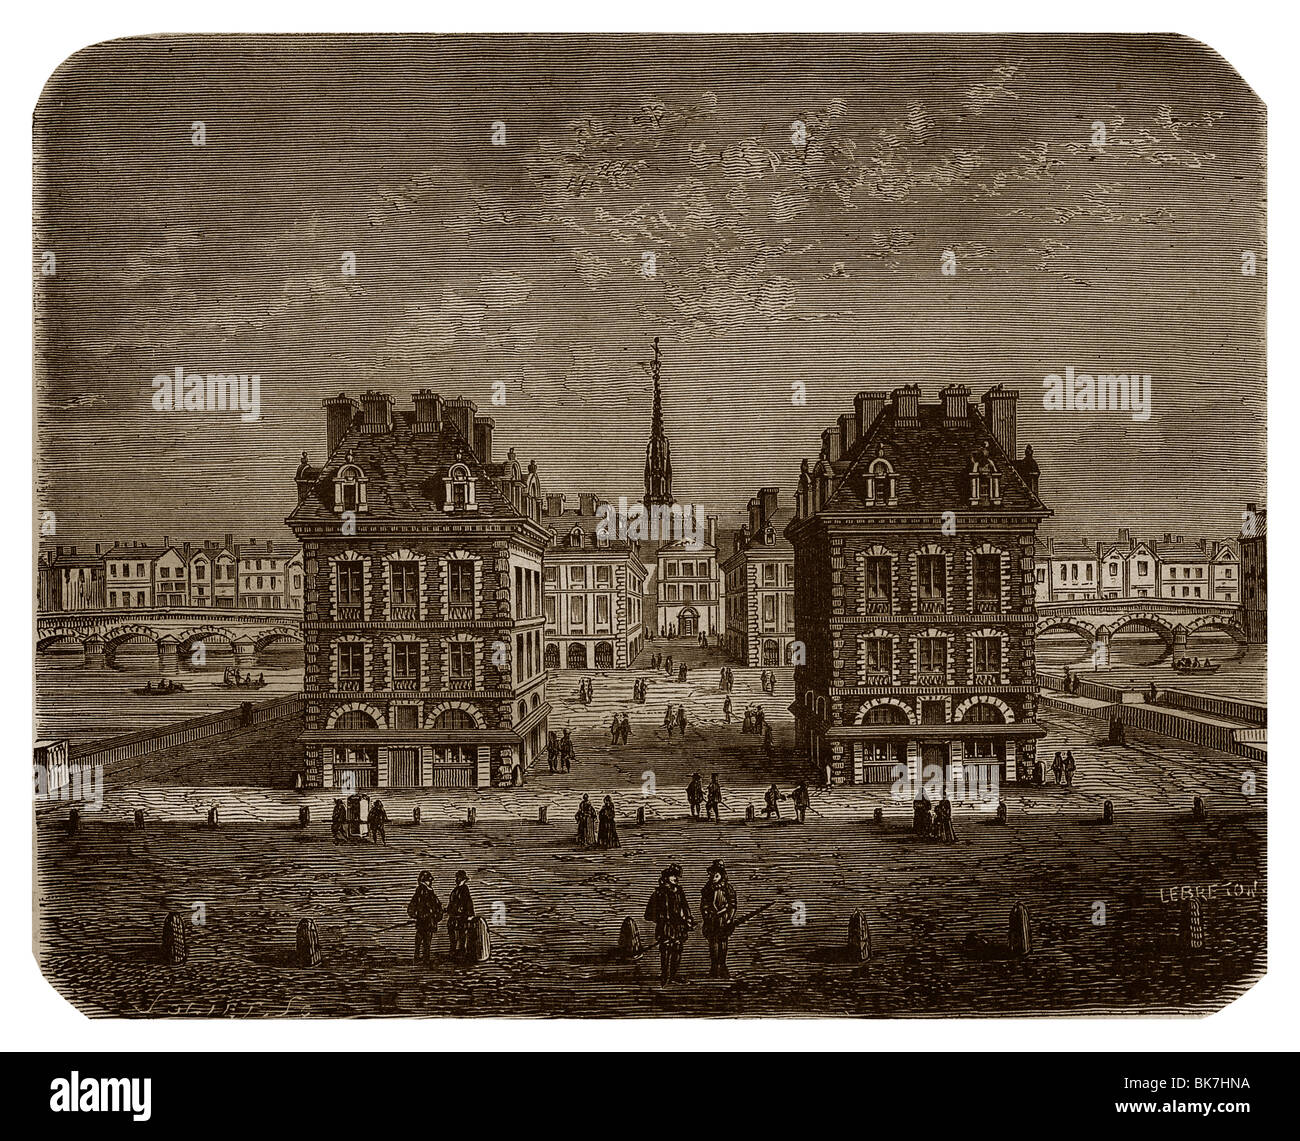 Place Dauphine during the reign of Henry IV of France. - Stock Image